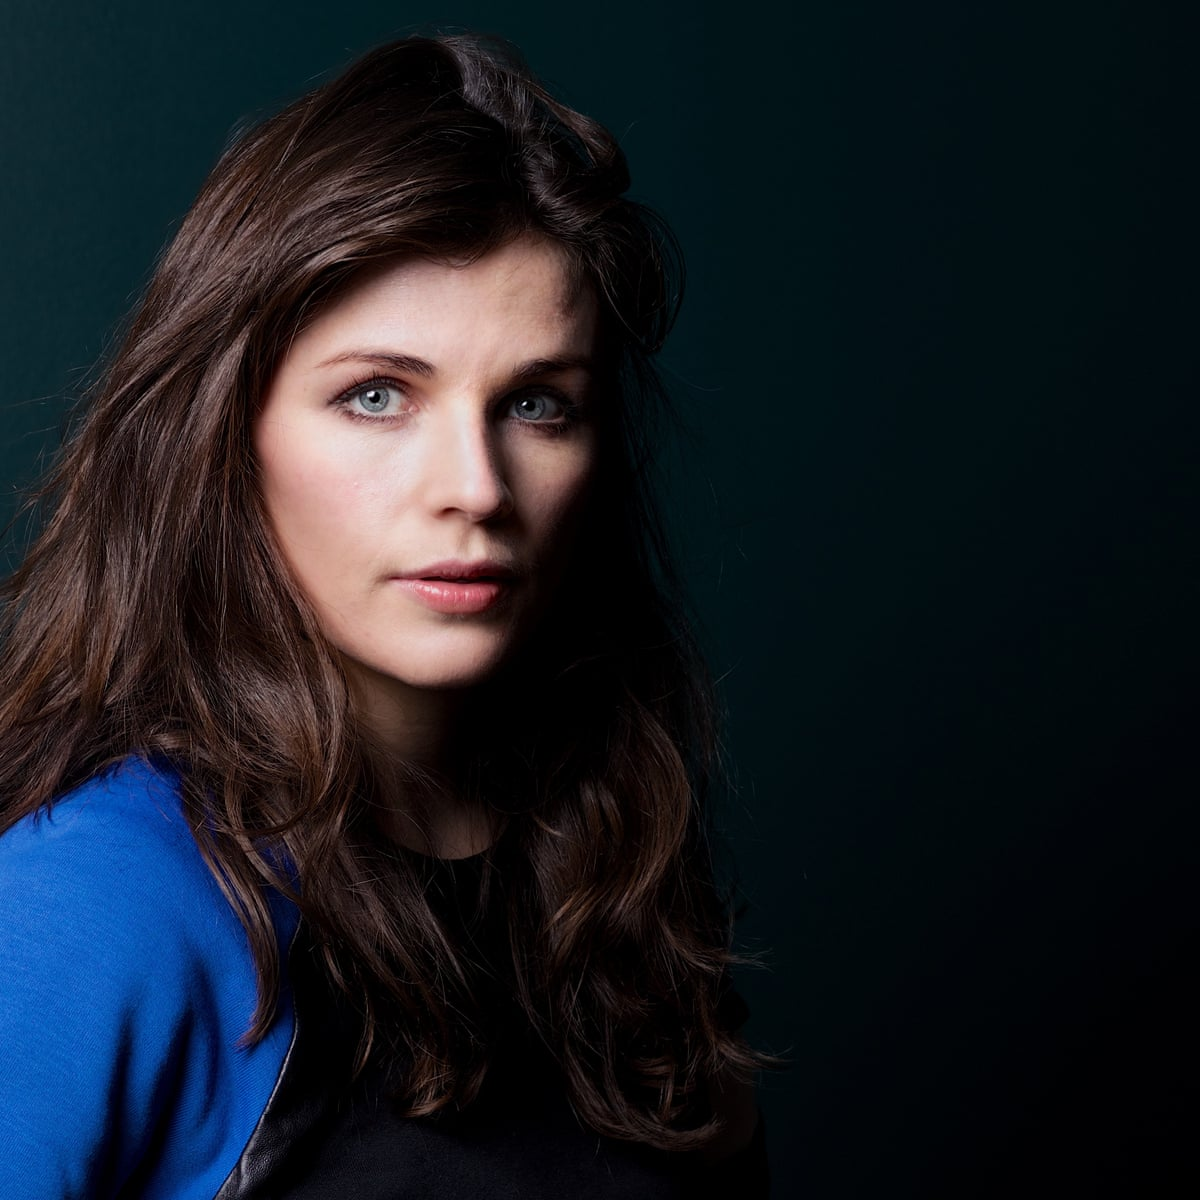 Aisling Bea My Father S Death Ha Given Me A Love Of Men Their Vulnerability And Tendernes Family The Guardian First They Killed Essay